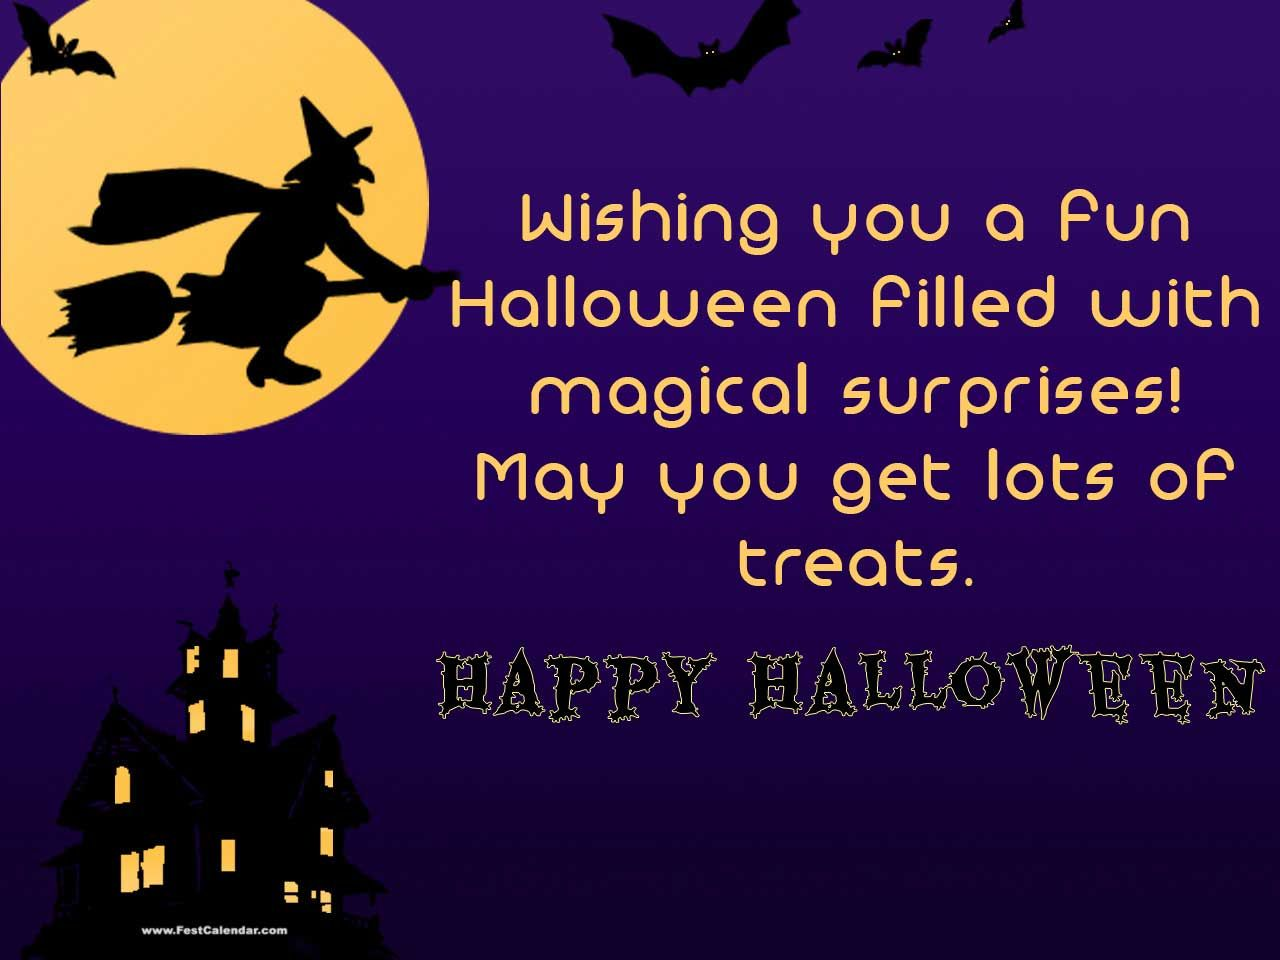 Halloween Wishes Are Served With Scary Pictures And Funny Images To  Celebrate Happy Halloween Get Funny Halloween Greetings Online For Free.